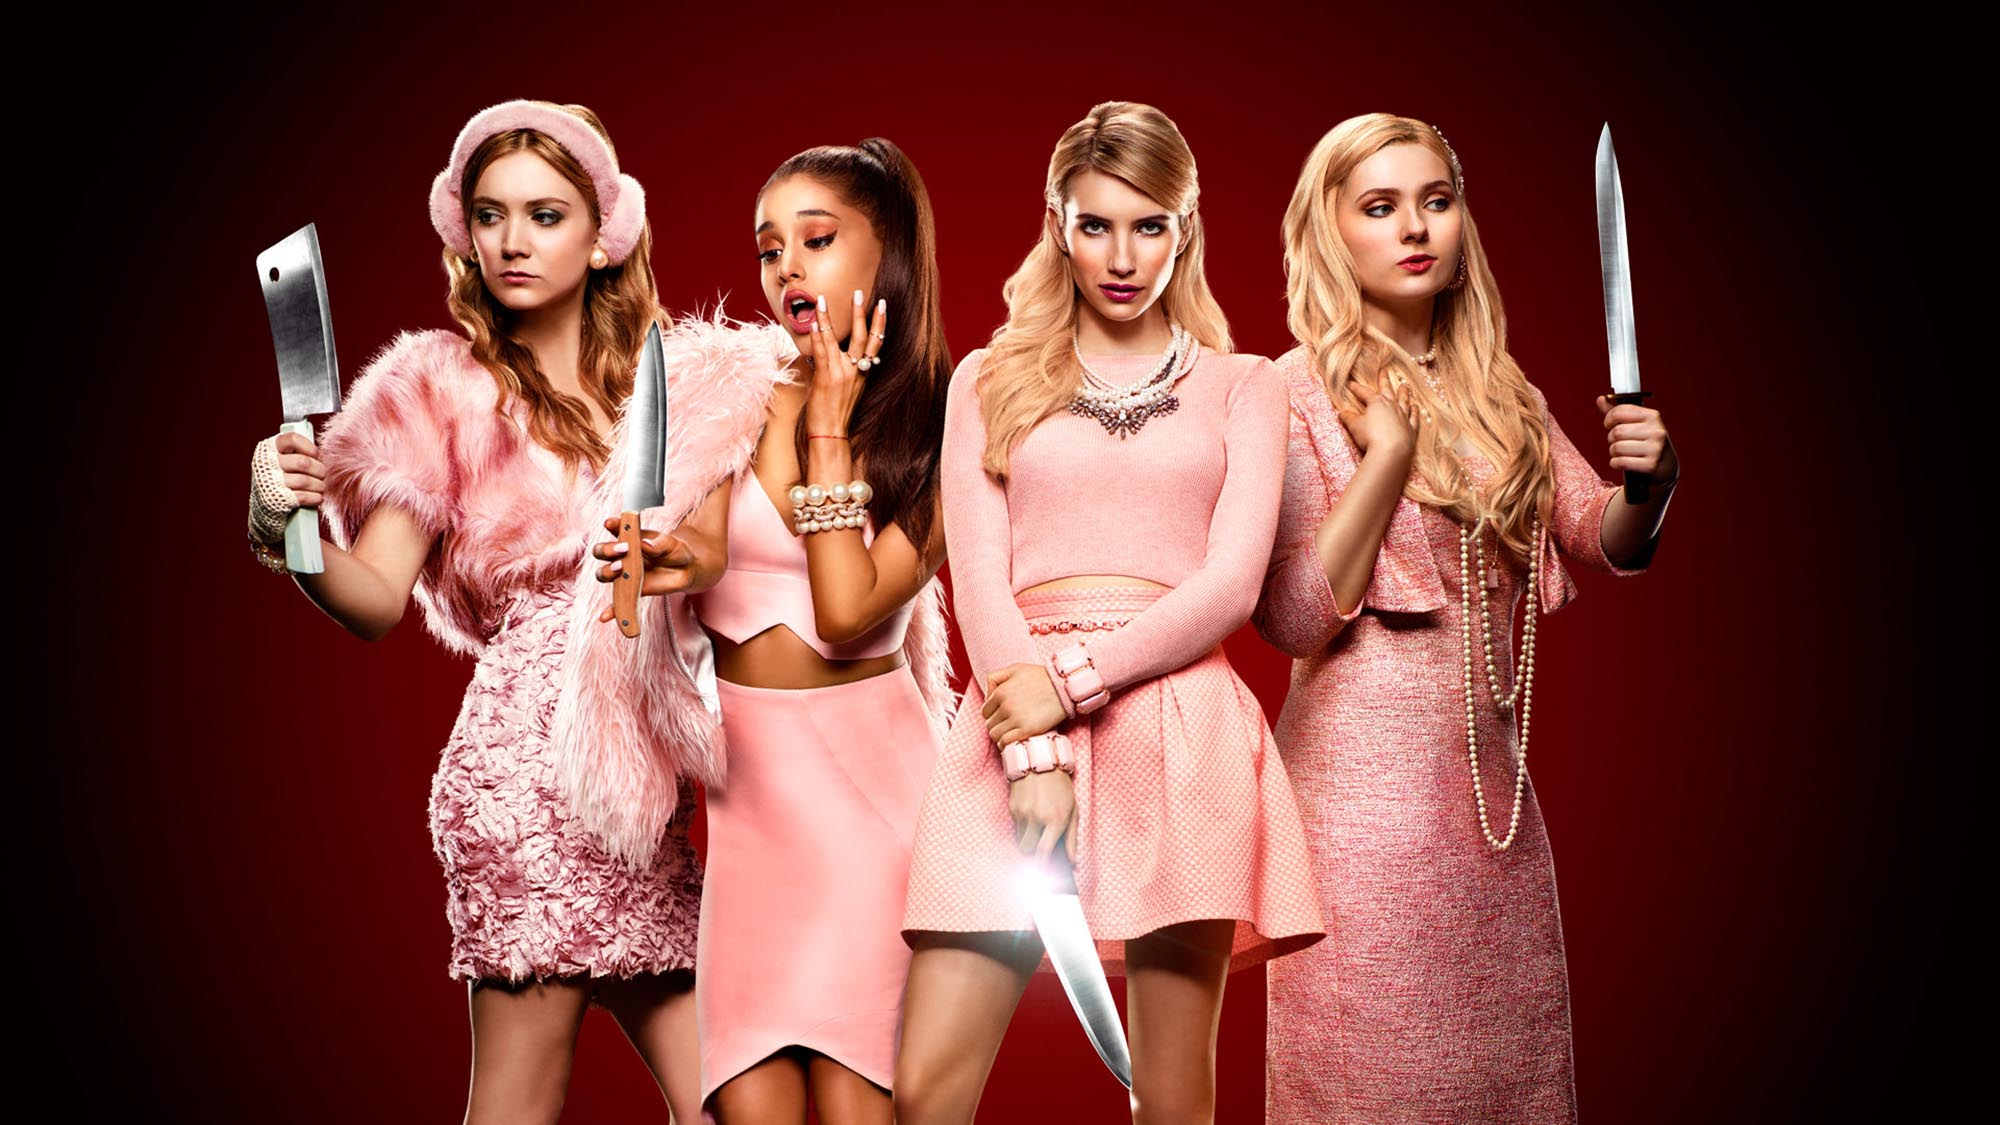 Diego Boneta is a little too good for the 'Terminator' reboot, but we loved him as Pete Martinez. We rank the best death scenes from 'Scream Queens' ever.